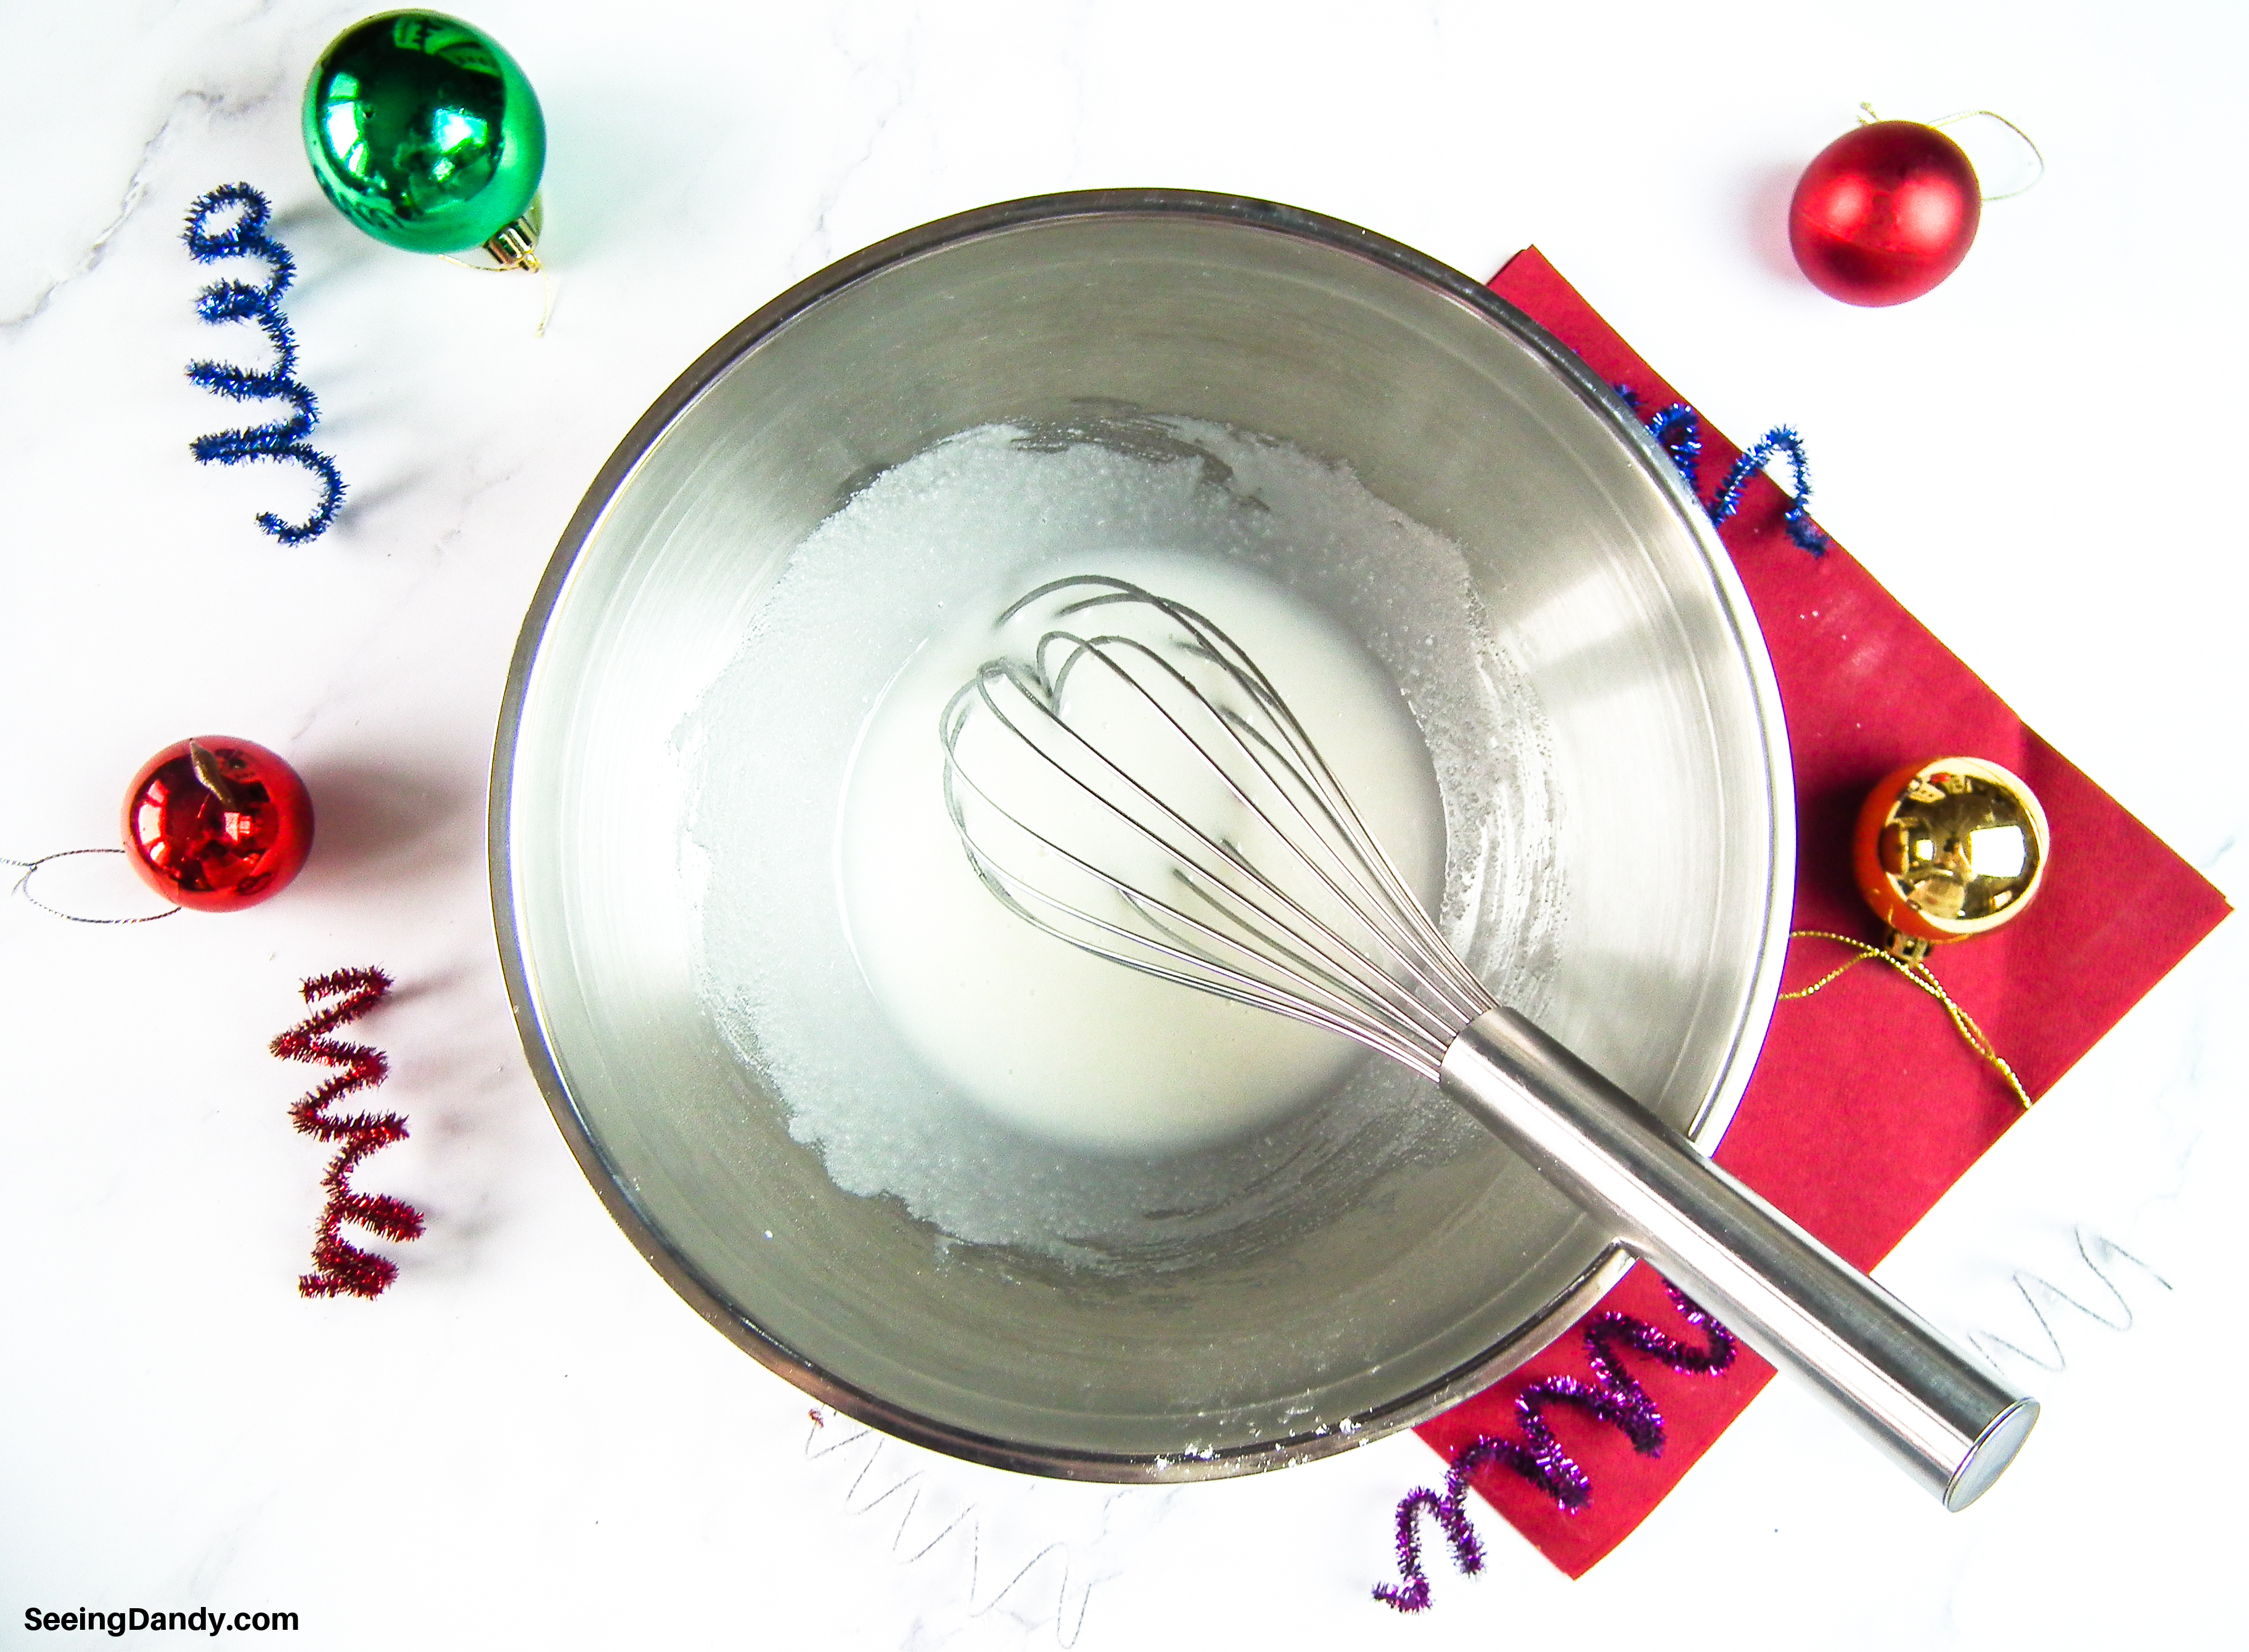 easy icing recipe, christmas ornaments, marble countertop, silver bowl, whisk